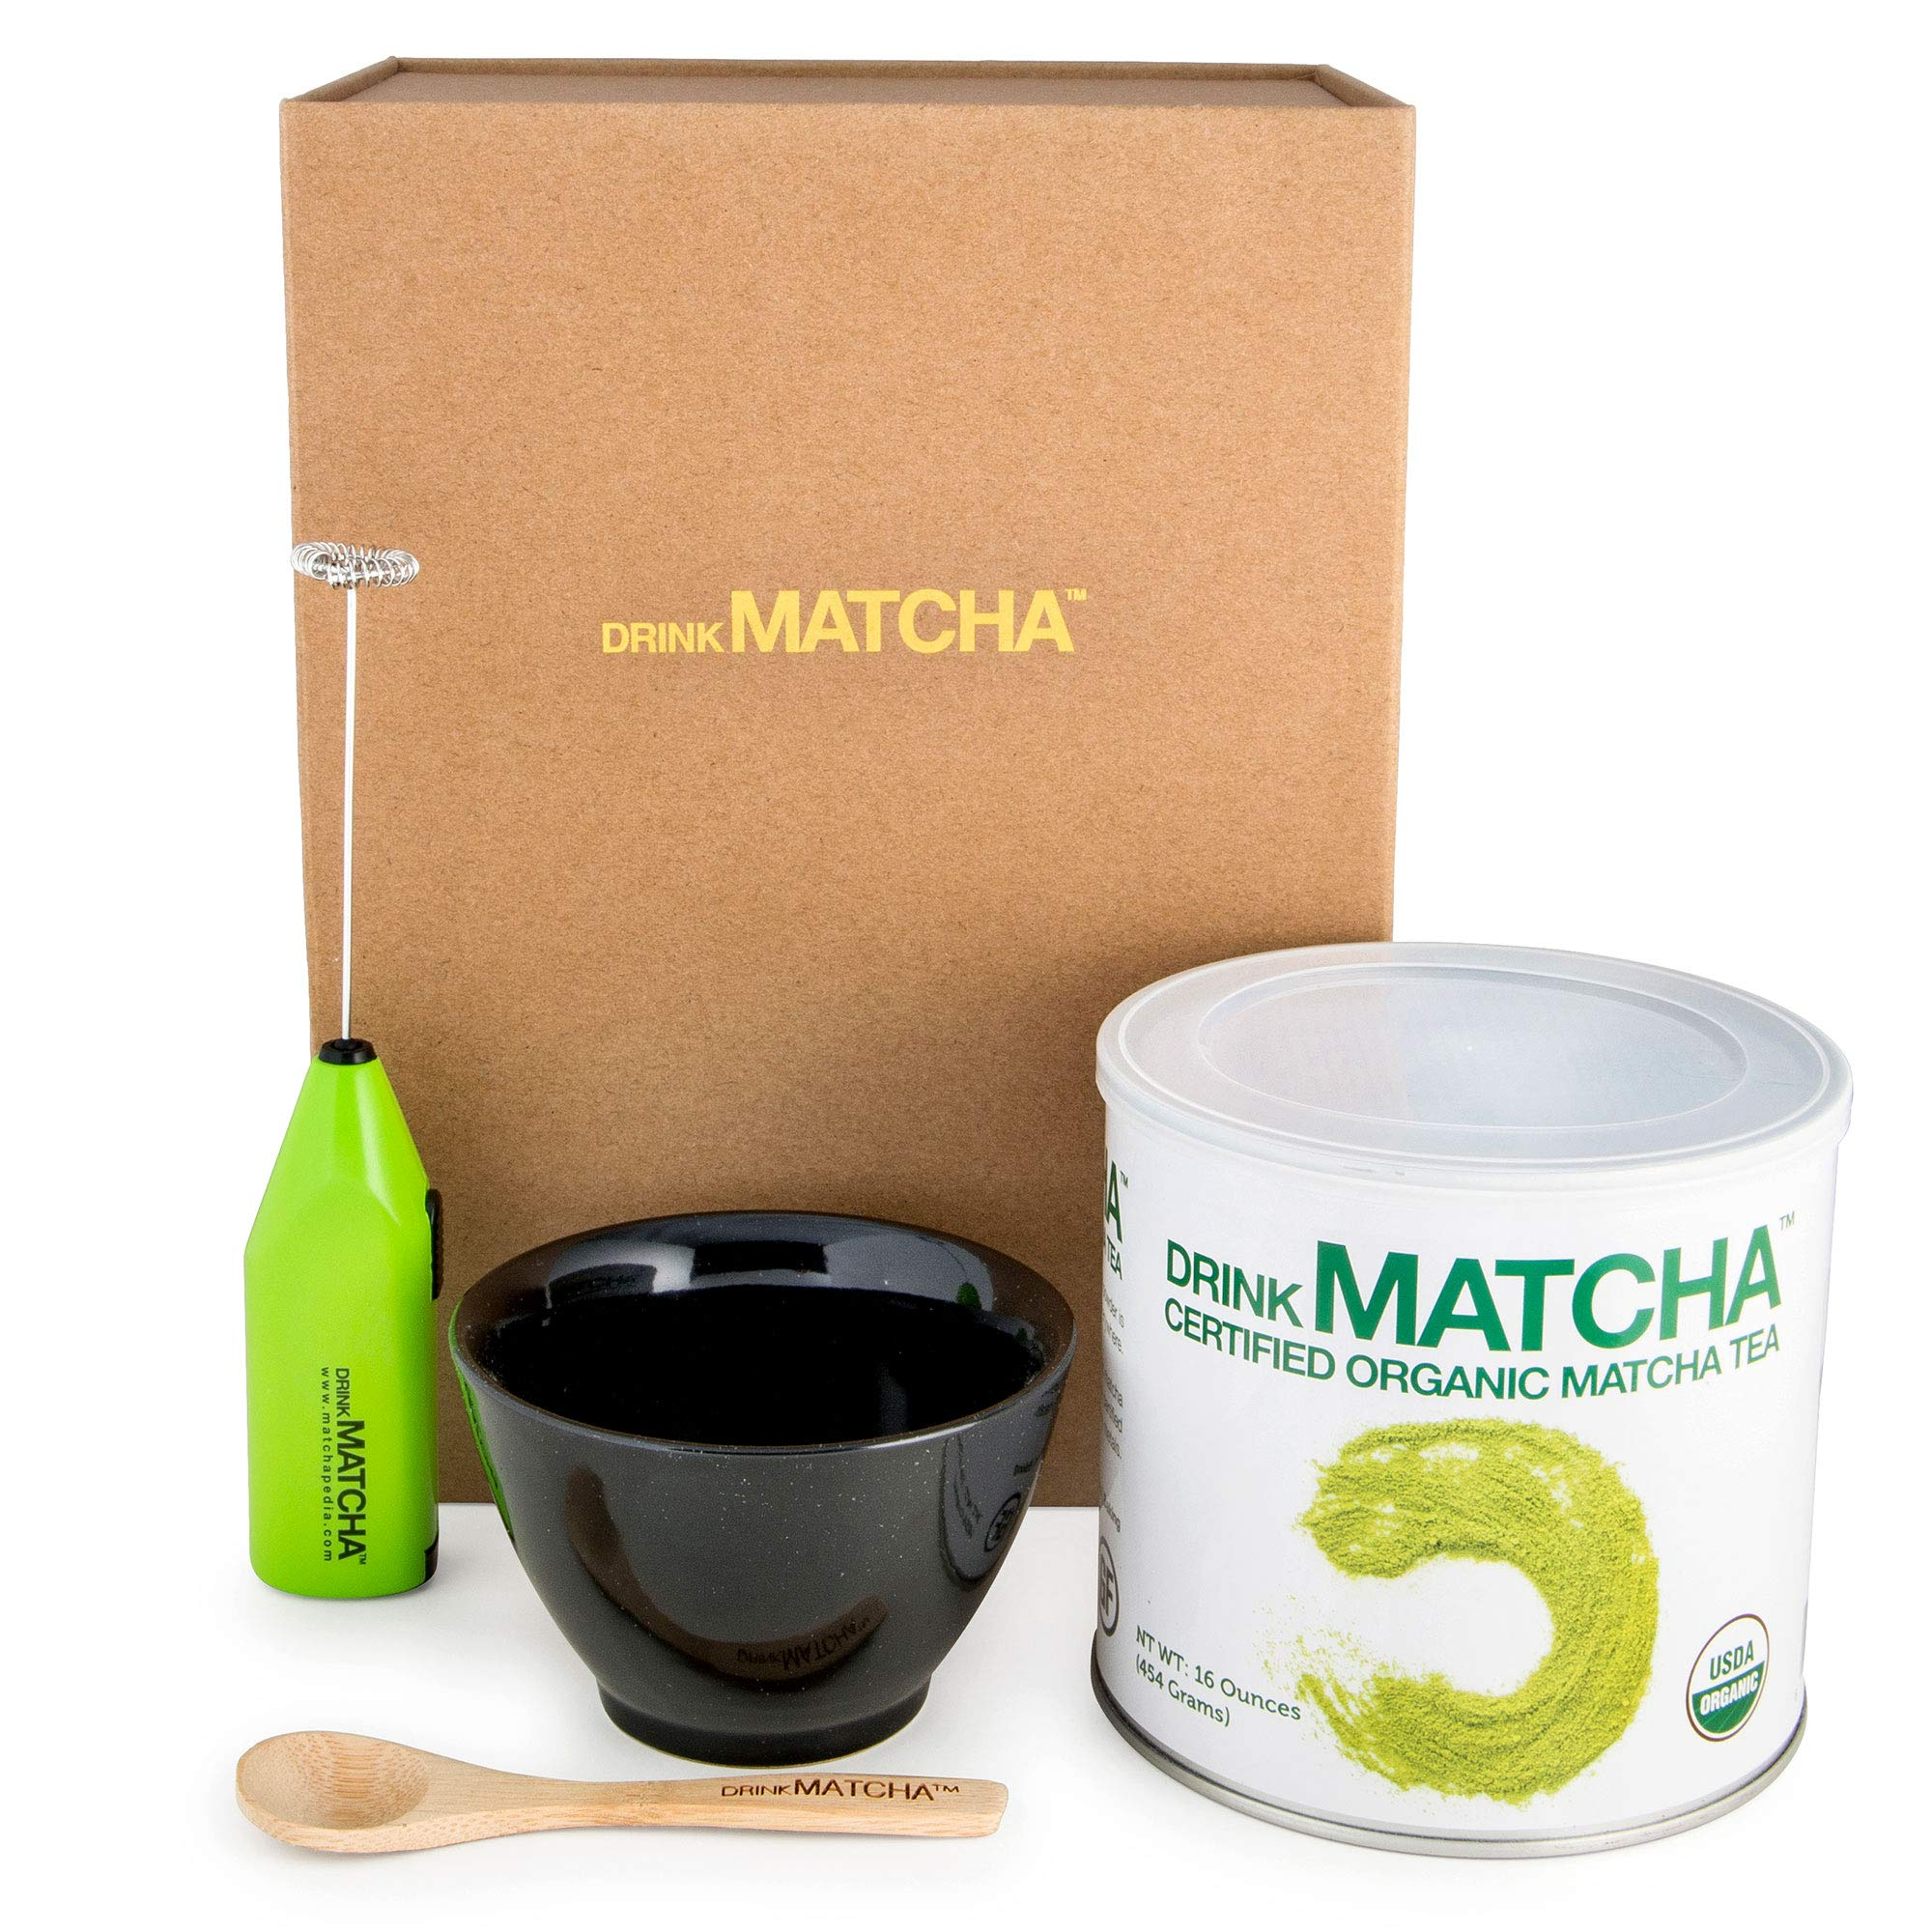 Drink Matcha Organic Green Tea Powder Set Bundle with Ceramic Tea Bowl, Handheld Electric Whisk and Bamboo Spoon, 16 oz. by DRINK MATCHA